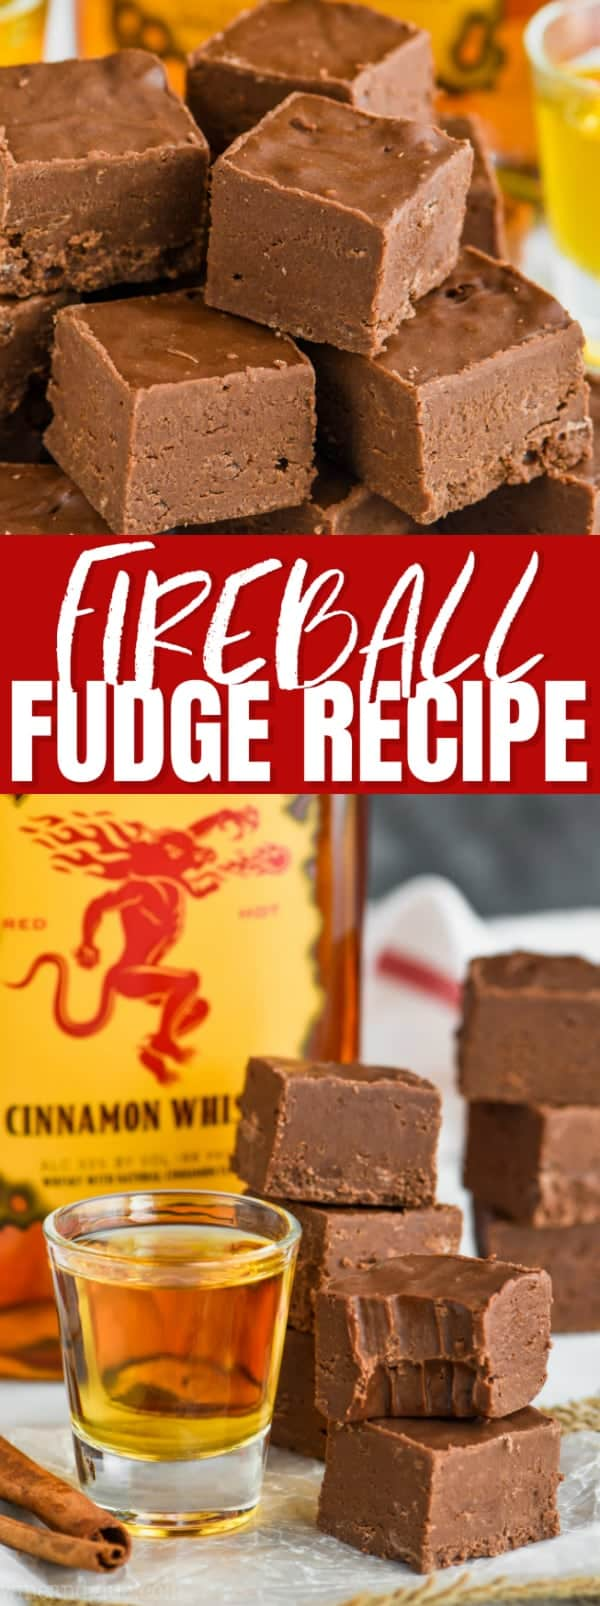 easy fireball fudge recipe, fudge made with whiskey